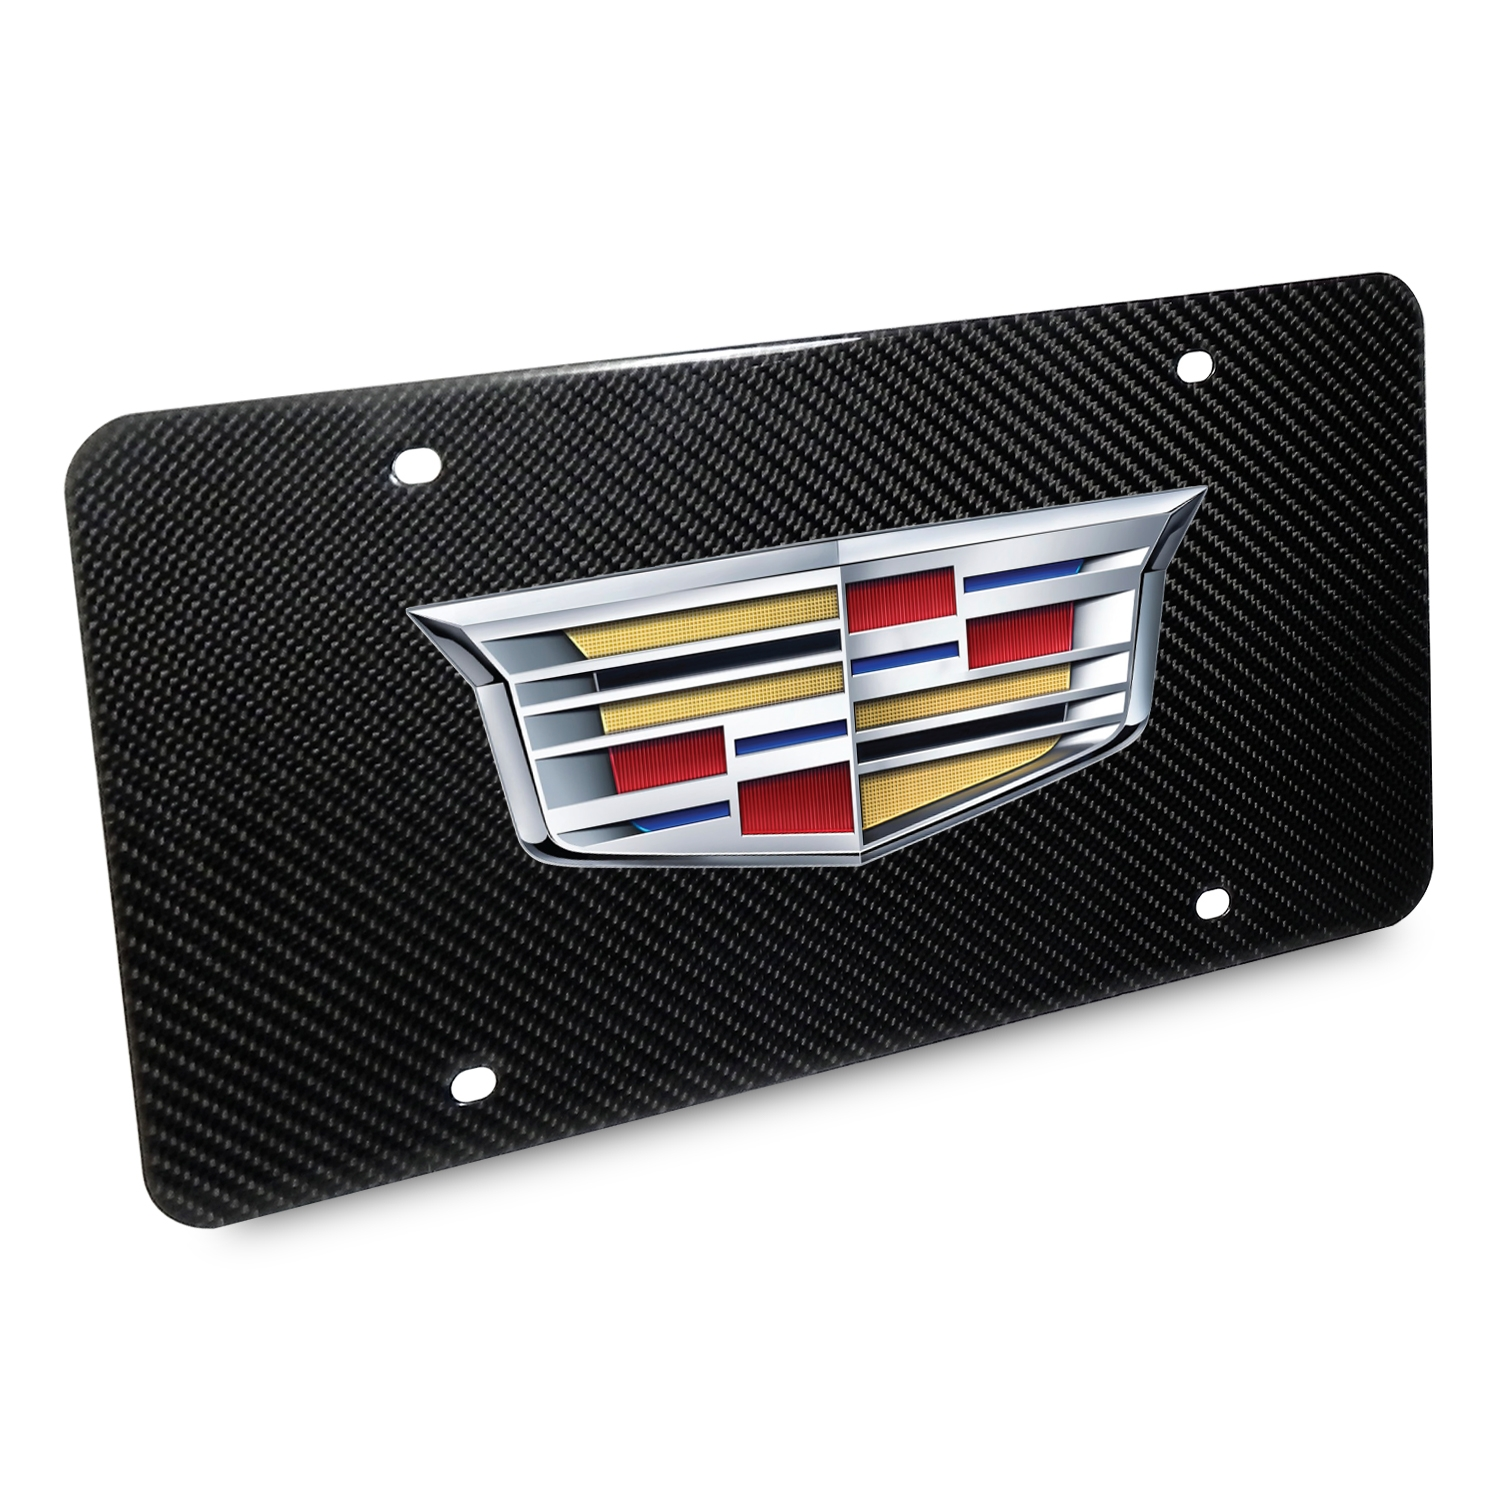 Cadillac 2015 Logo UV Graphic 100% Real Black Carbon Fiber License Plate